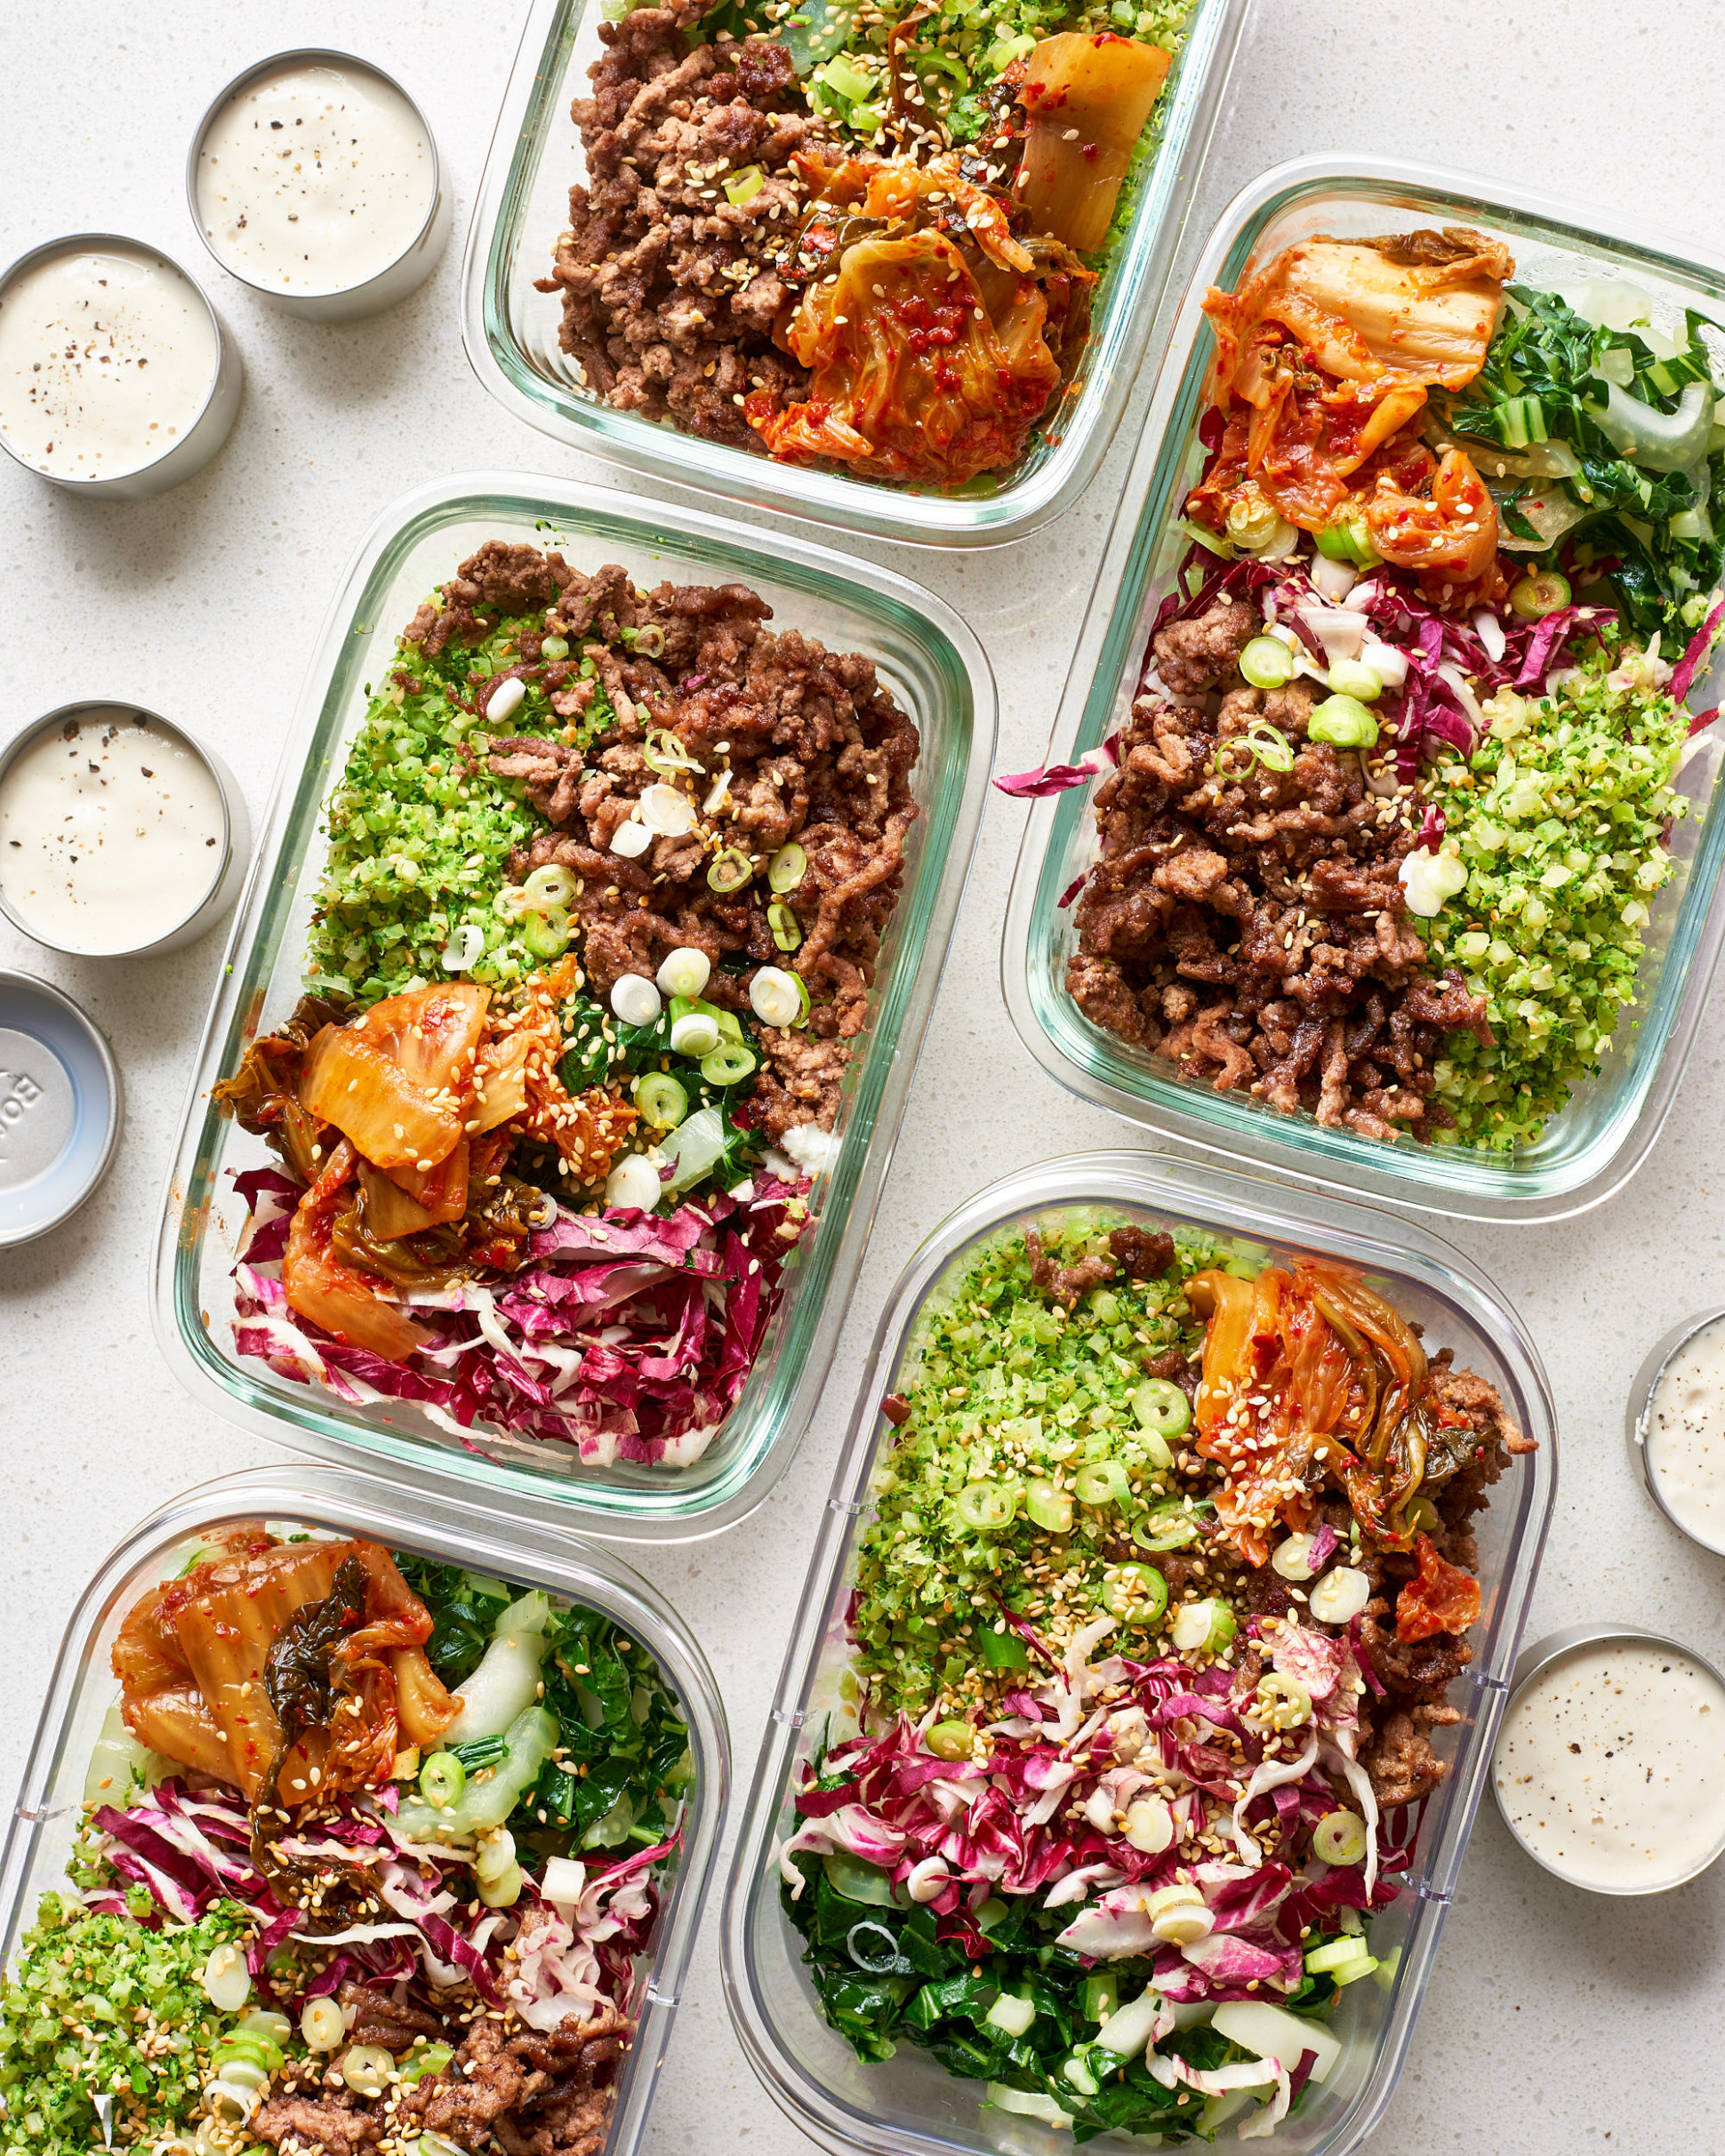 Low-Carb Meal Prep: A Week of Meals | Kitchn - recipes vegetarian no carbs